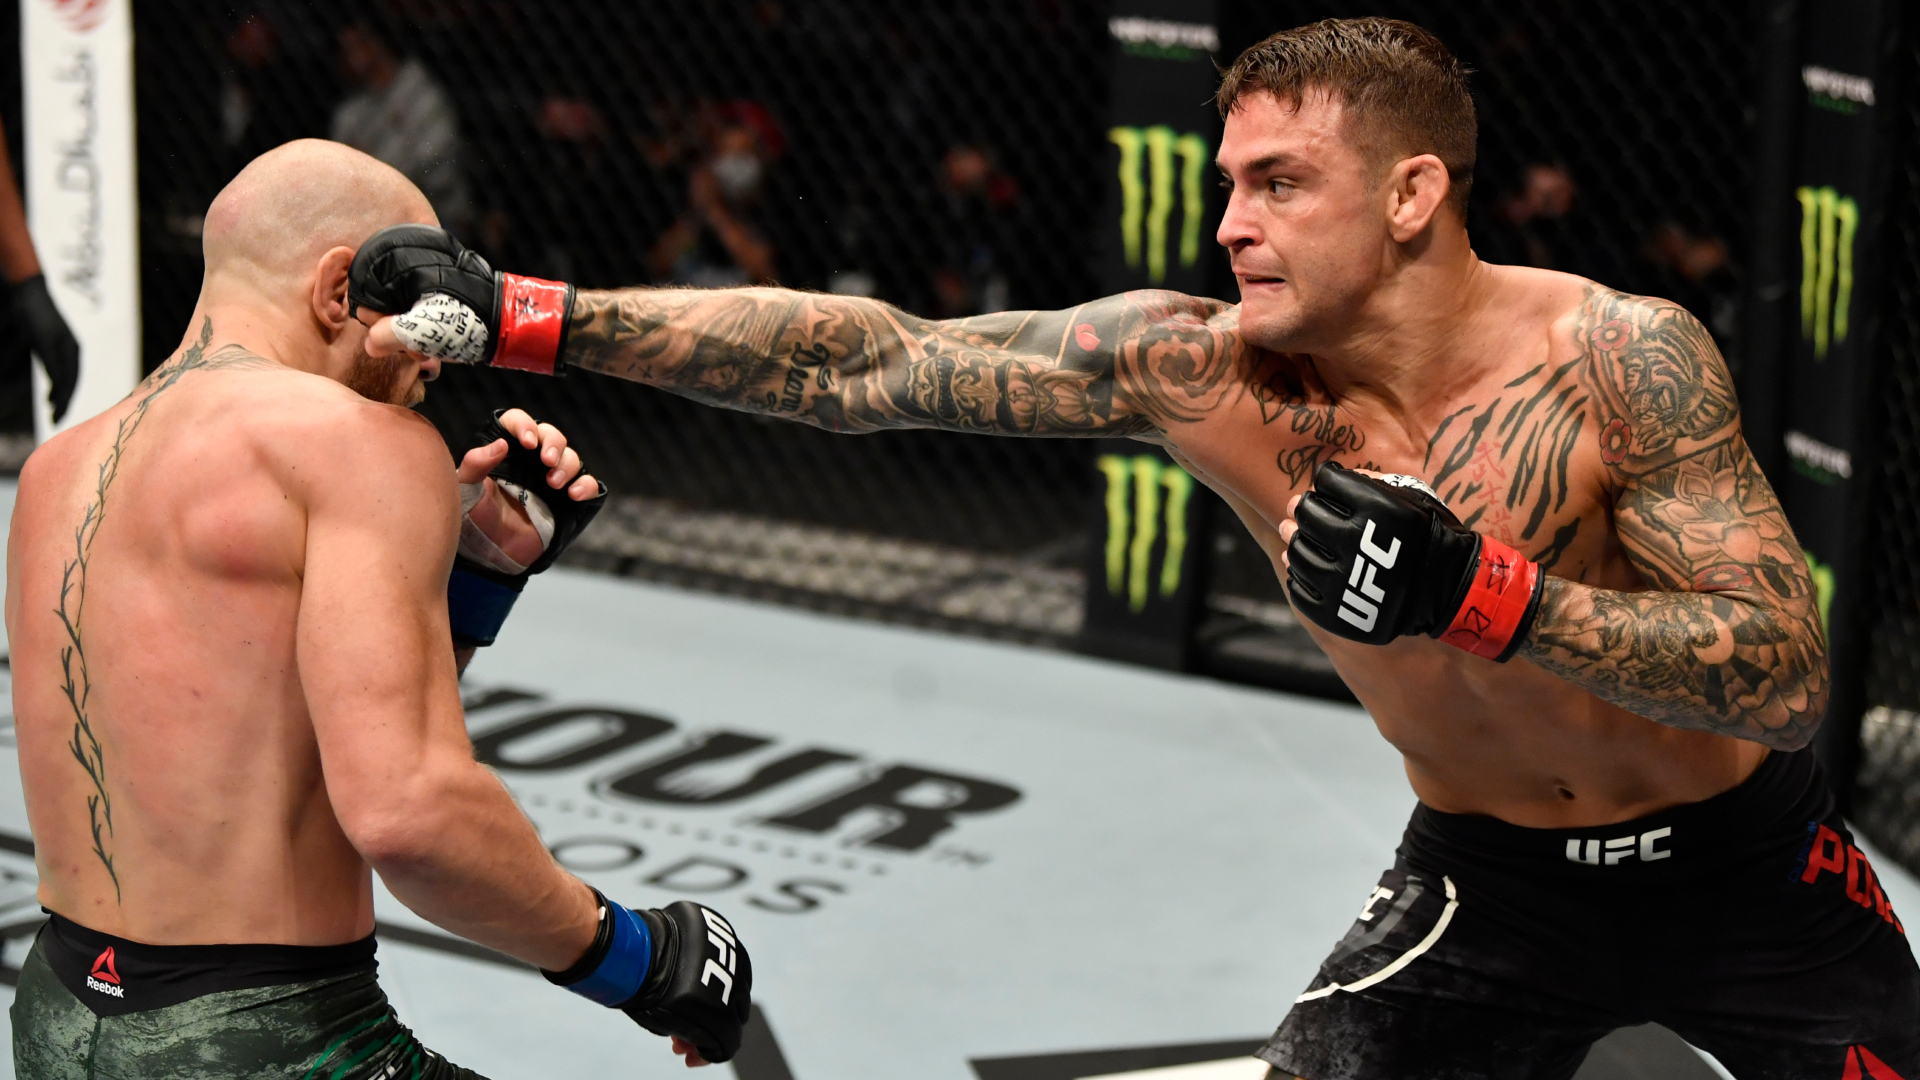 UFC 257: Poirier stuns McGregor with second-round knockout